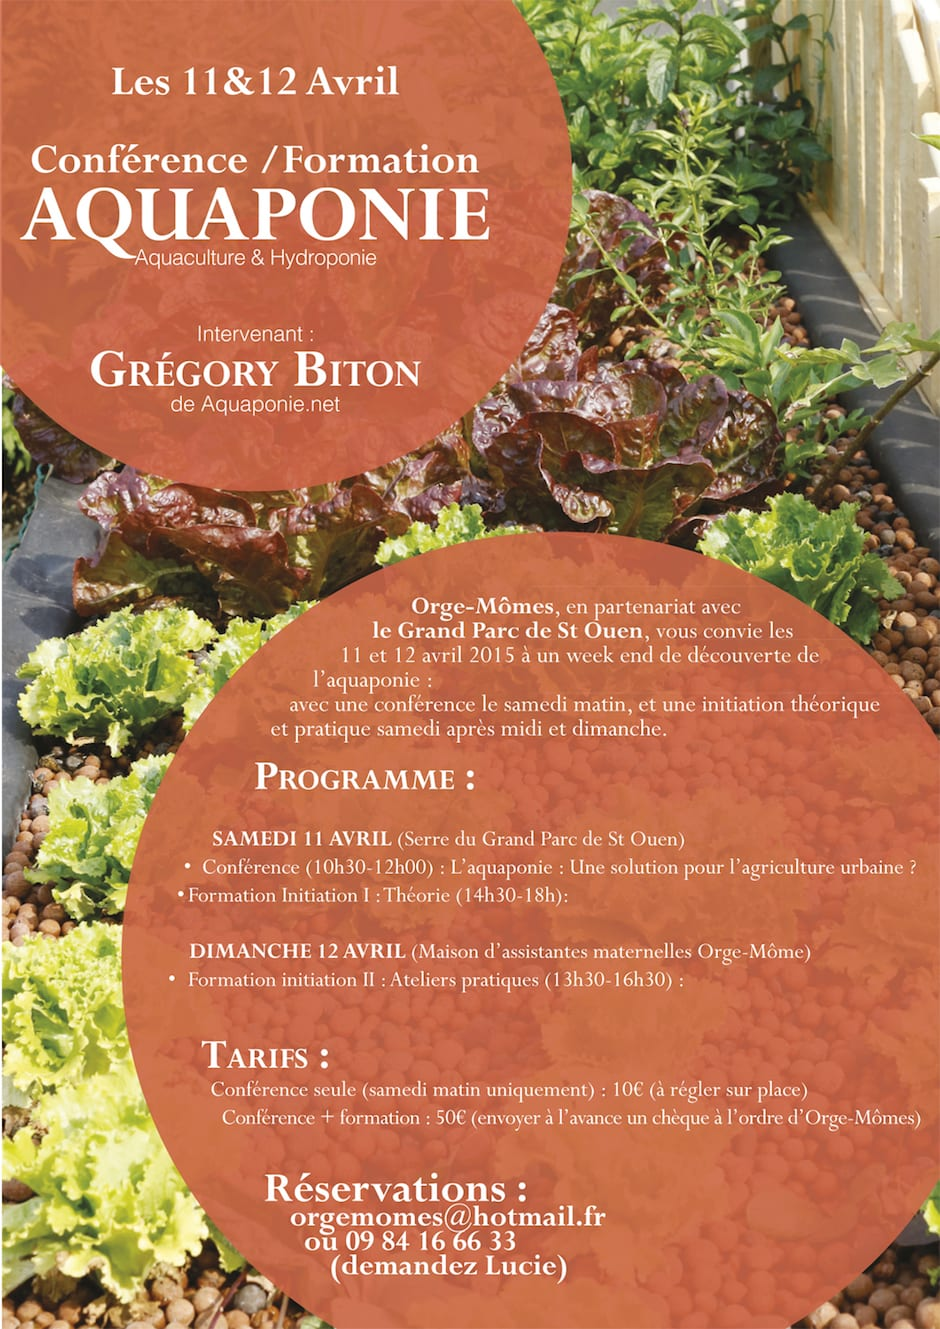 Initiation à l'aquaponie à St Ouen les 11 et 12 avril 2015